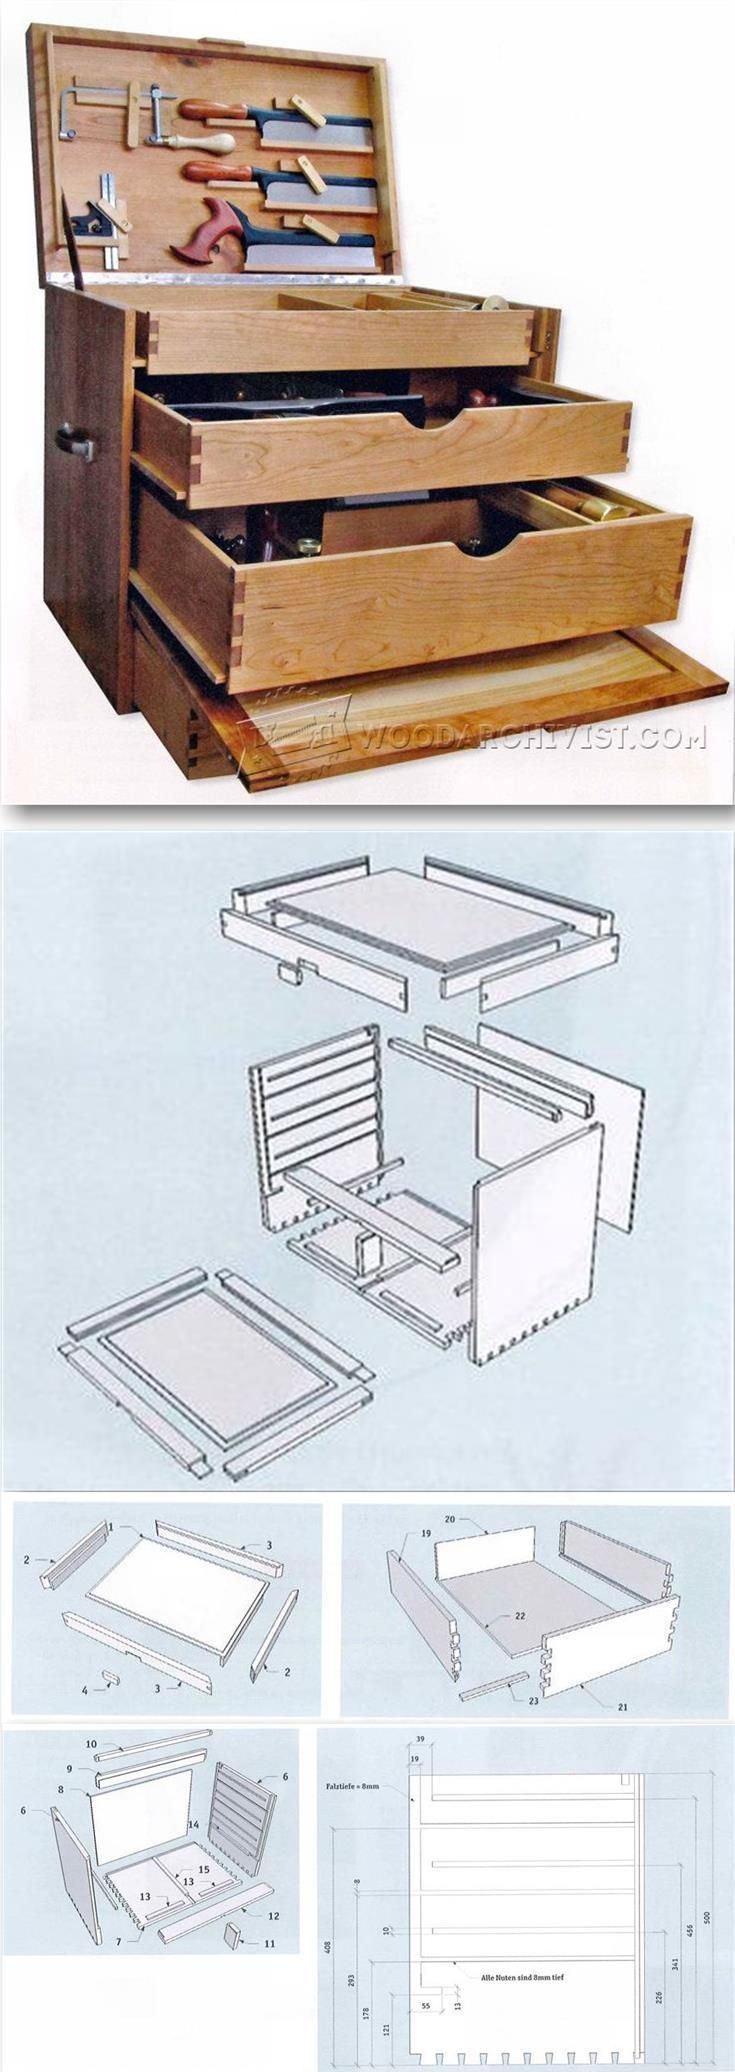 Working with pallets 5 essential woodworking power tools that won - Woodworking Tool Chest Plans Workshop Solutions Projects Tips And Tricks Http